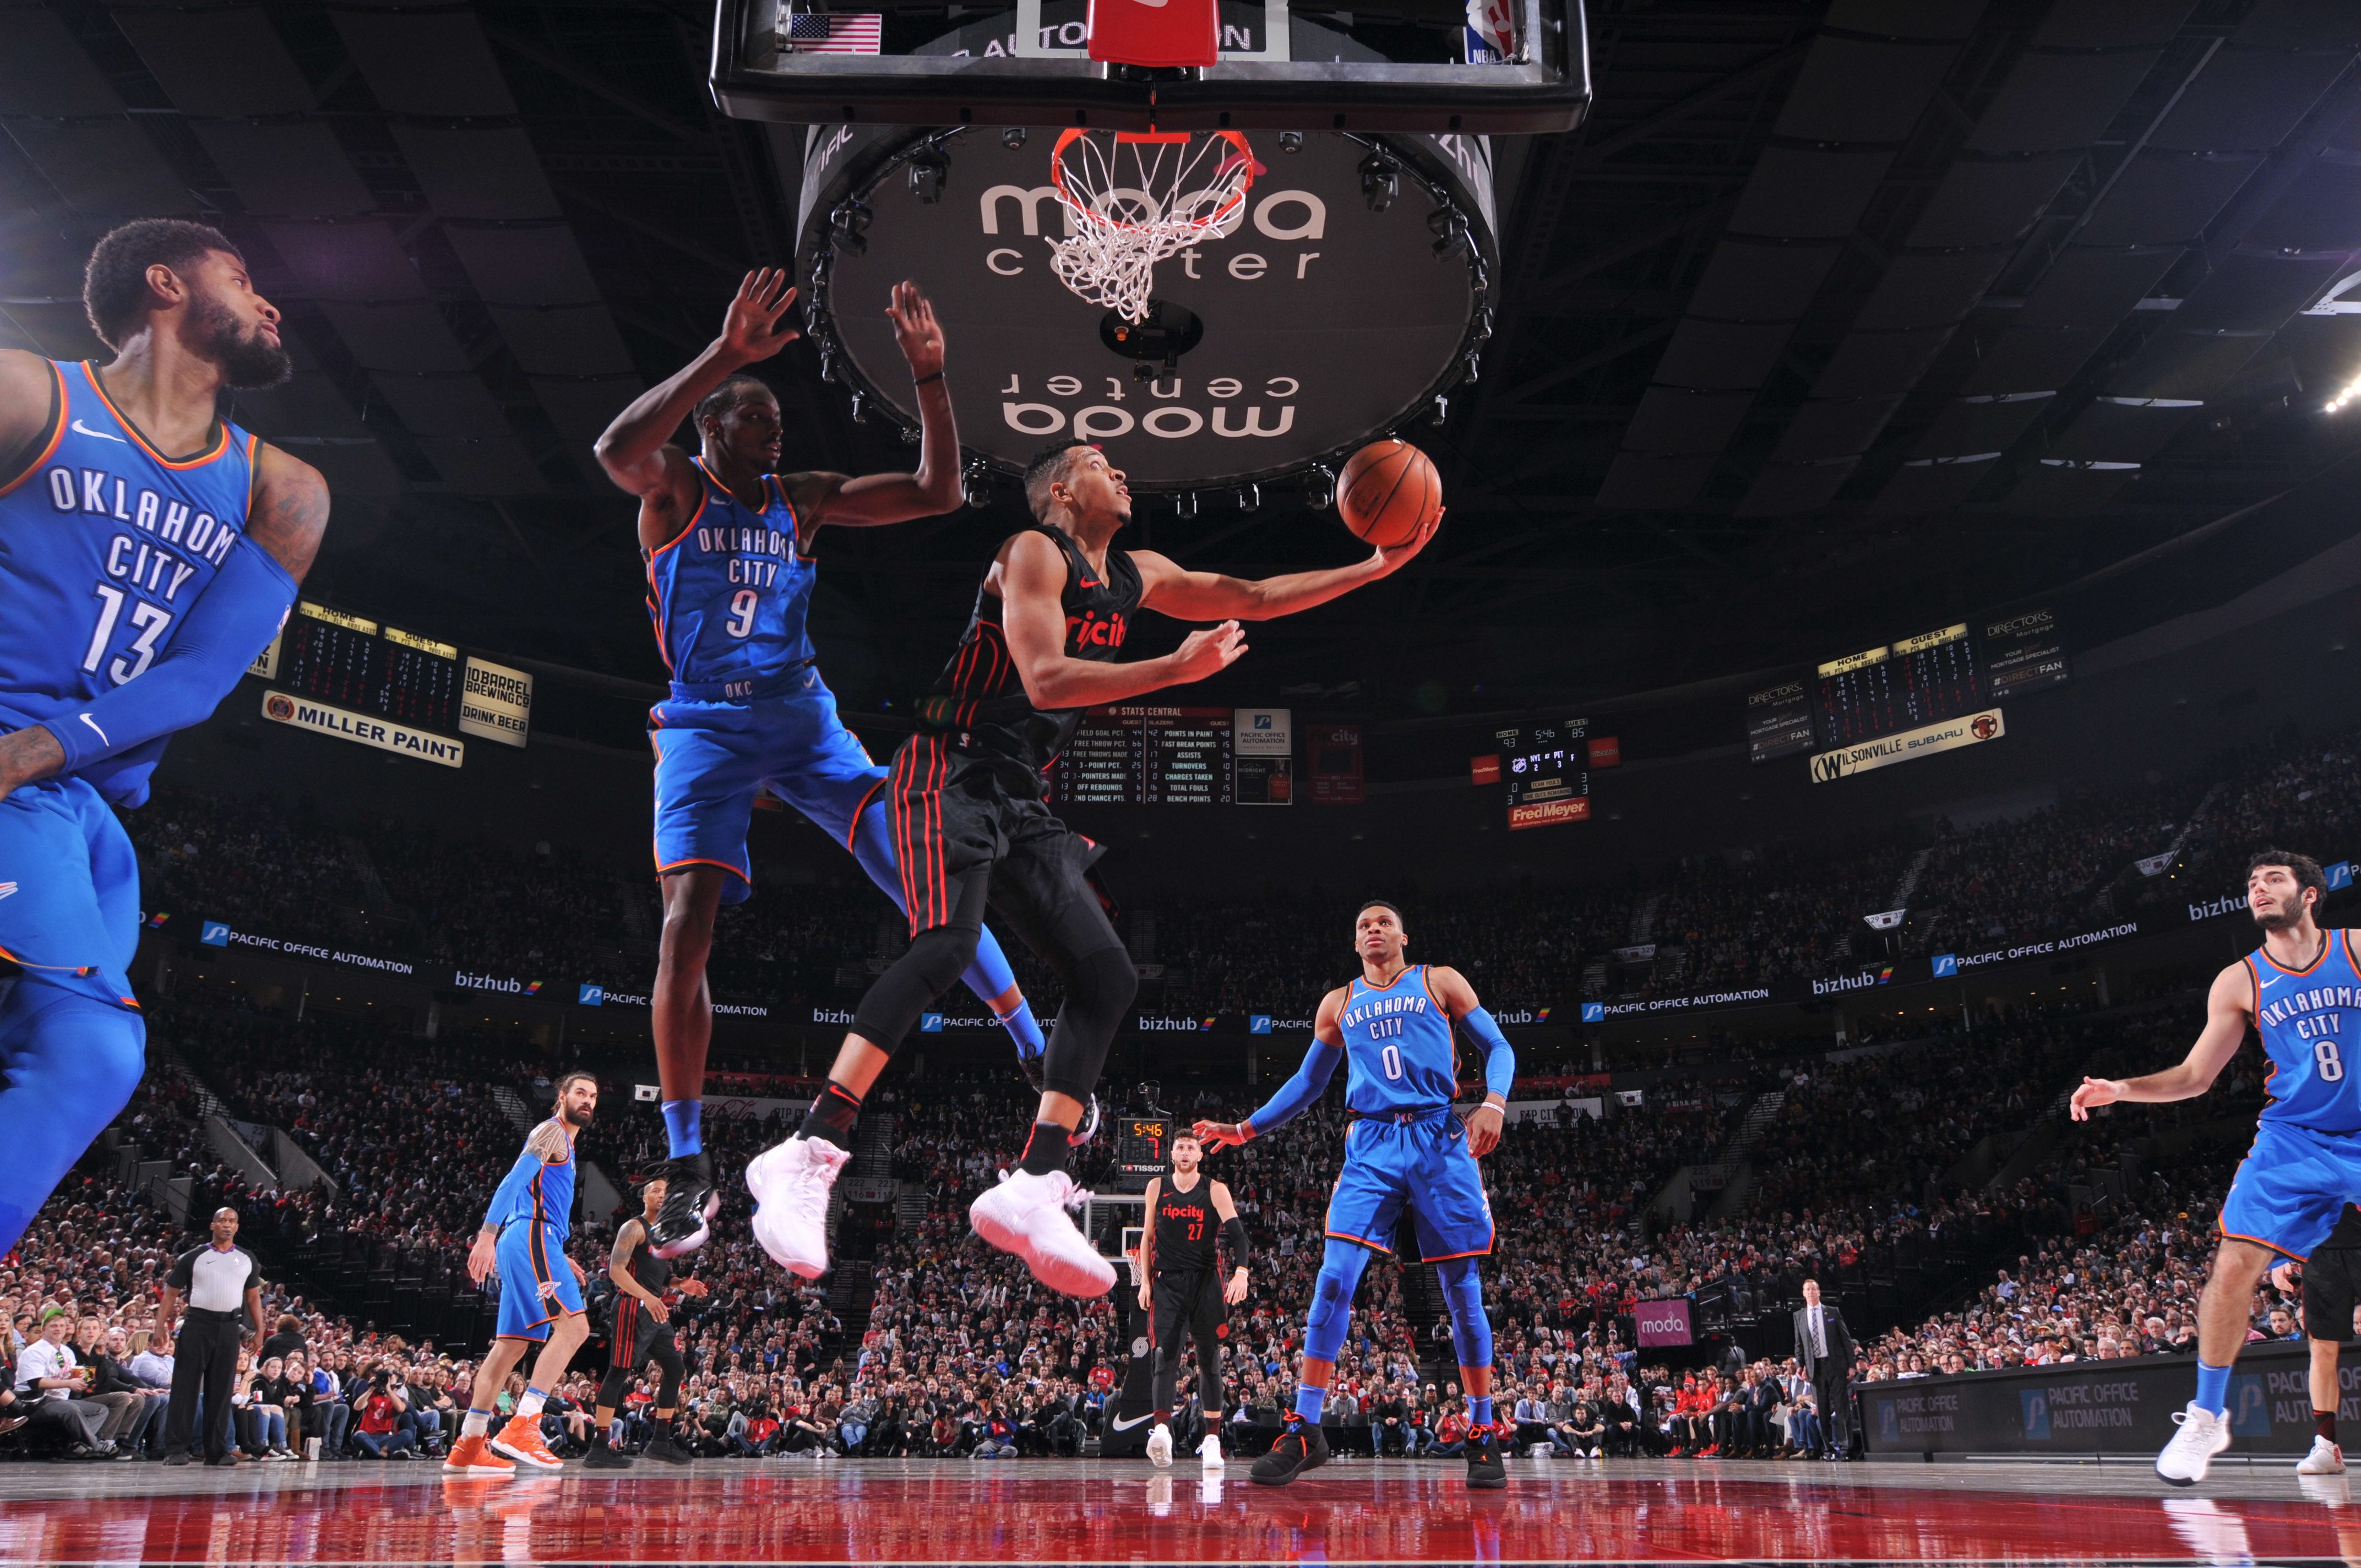 thunder vs trail blazers - photo #20